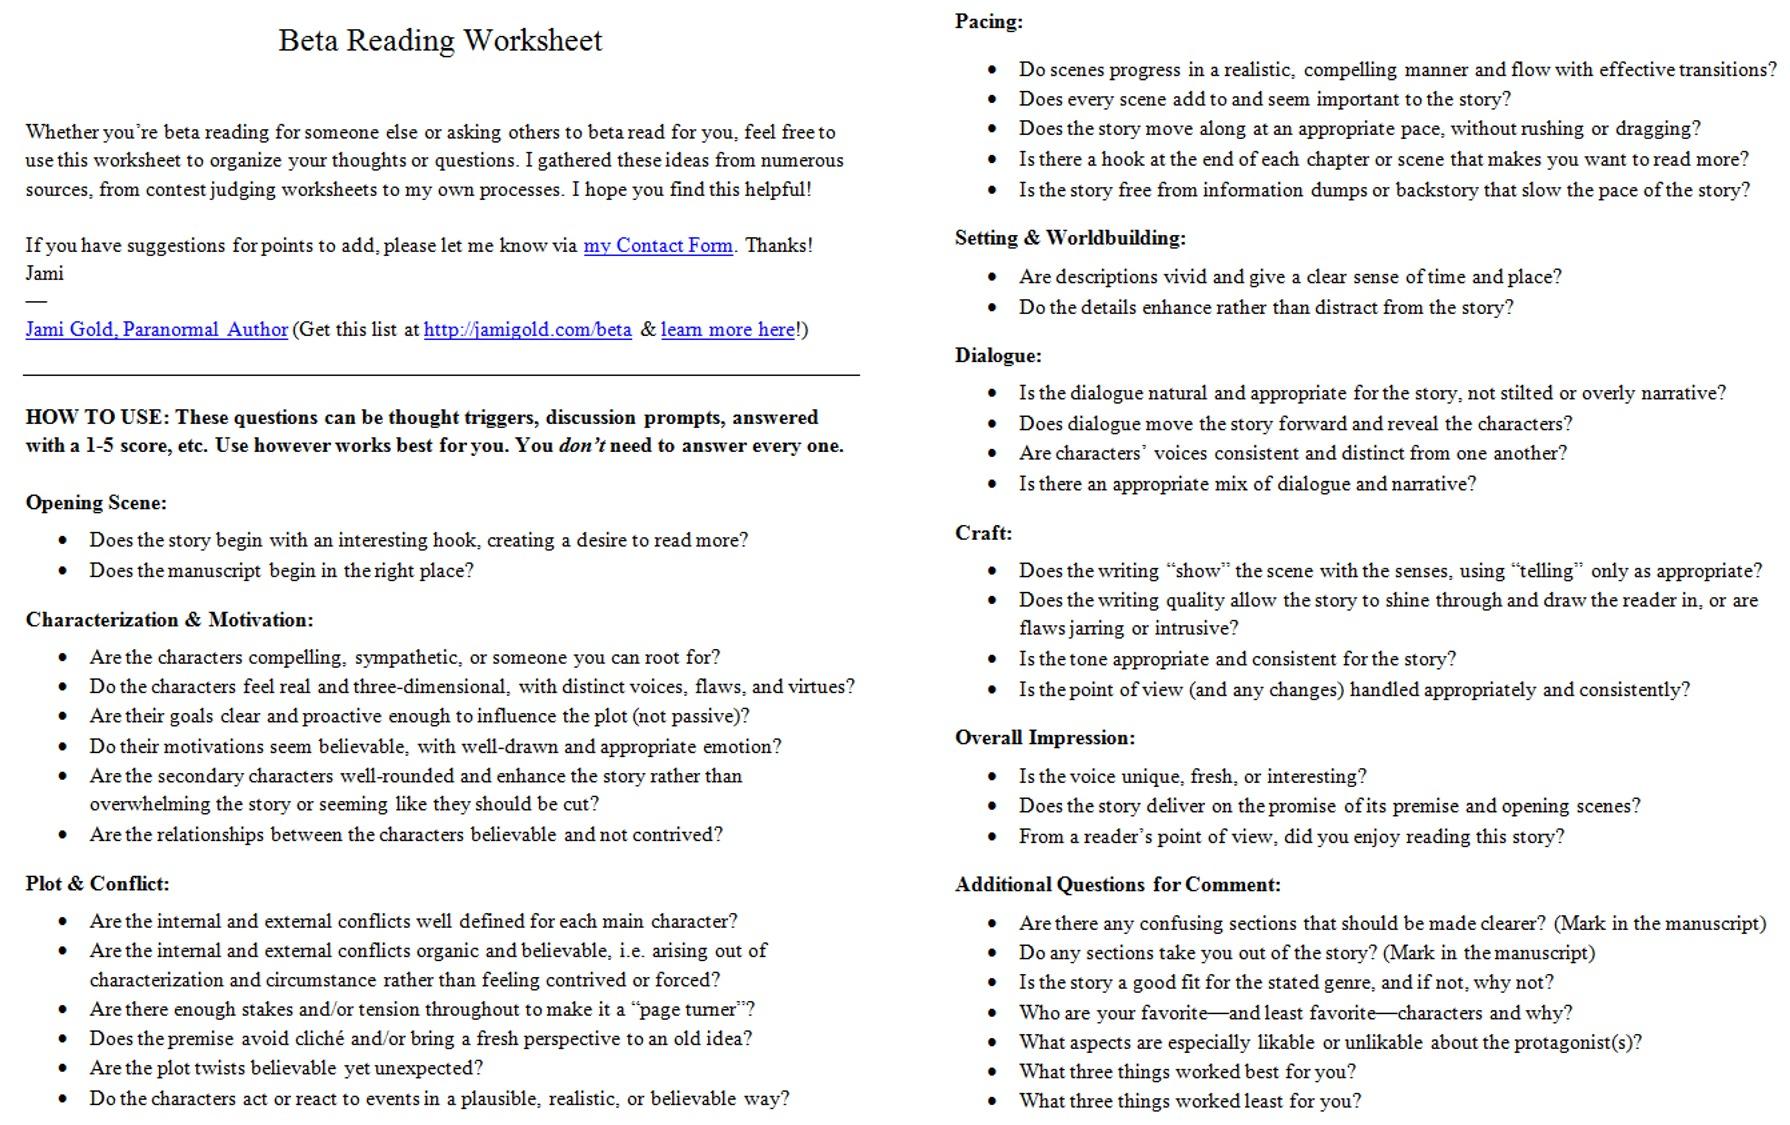 Aldiablosus  Stunning Worksheets For Writers  Jami Gold Paranormal Author With Goodlooking Screen Shot Of The Twopage Beta Reading Worksheet With Agreeable Practice Grammar Worksheets Also Dts Constructed Travel Comparison Worksheet In Addition Handwriting Worksheets For Prek And Islamic Studies Worksheets As Well As Alcoholics Anonymous Worksheets Additionally Sounds Worksheets From Jamigoldcom With Aldiablosus  Goodlooking Worksheets For Writers  Jami Gold Paranormal Author With Agreeable Screen Shot Of The Twopage Beta Reading Worksheet And Stunning Practice Grammar Worksheets Also Dts Constructed Travel Comparison Worksheet In Addition Handwriting Worksheets For Prek From Jamigoldcom